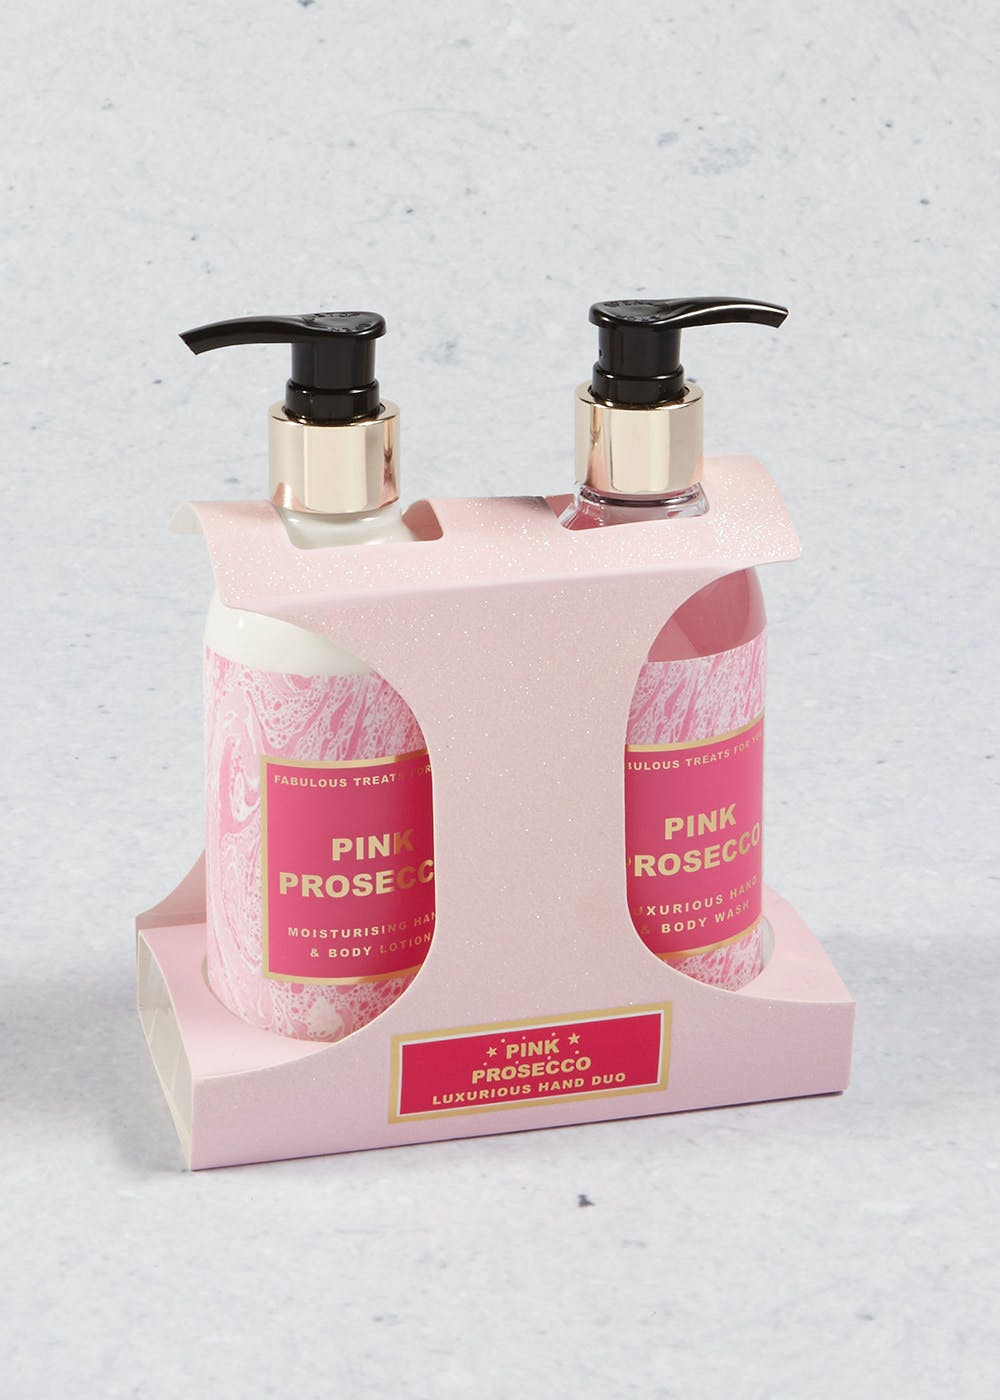 Prosecco Scented Body Wash & Lotion Gift Set (18cm x 12cm x 8cm)